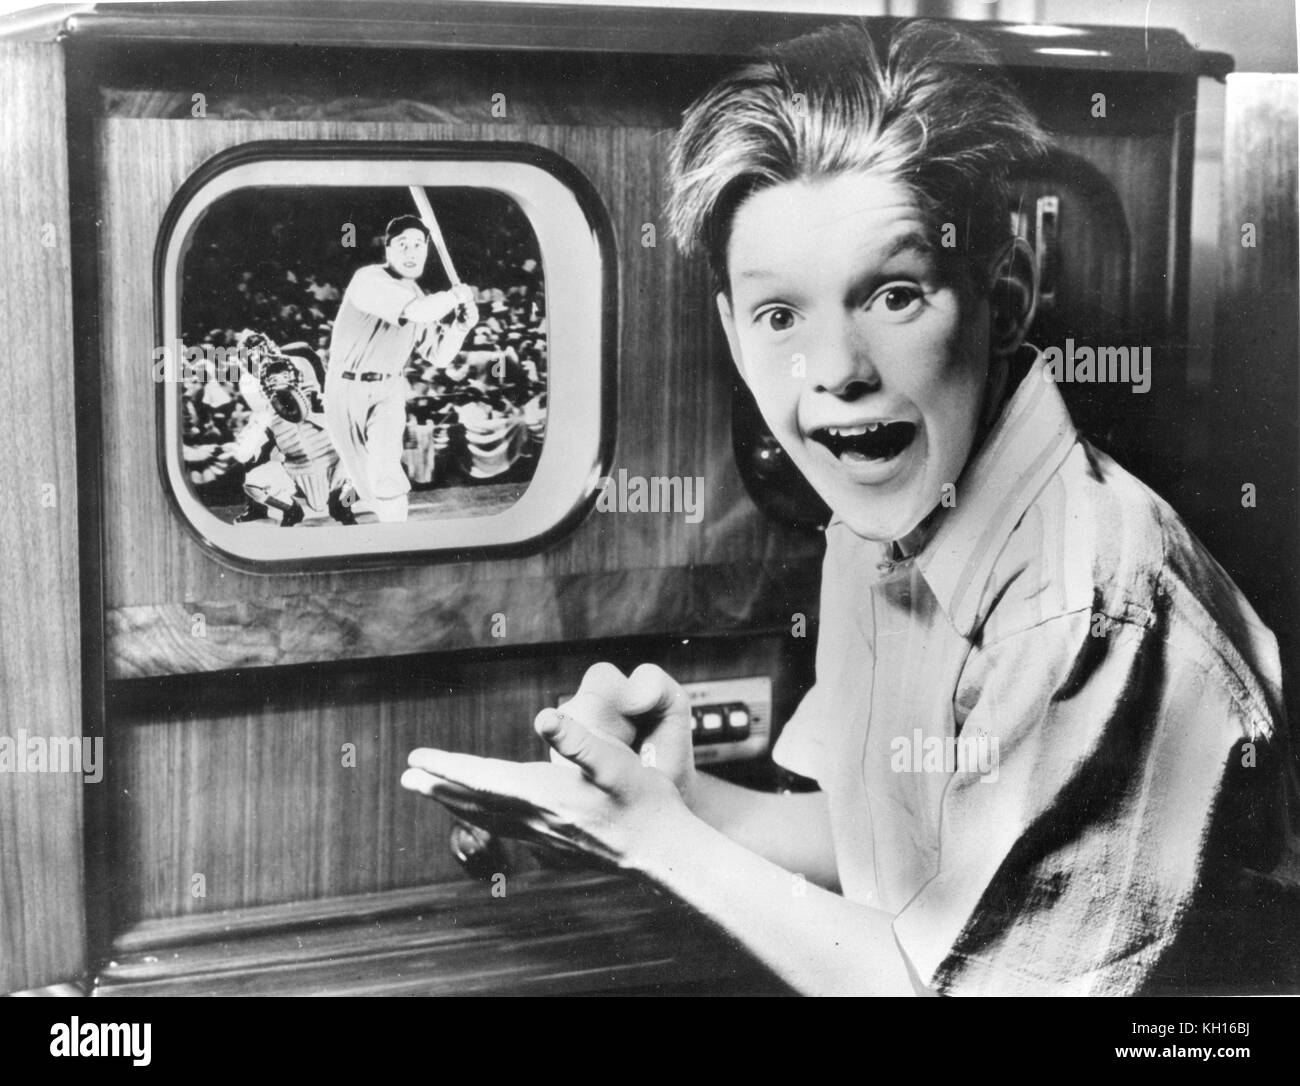 A young boy reacts with excitement while watching a television broadcast of a baseball game on a table model set - Stock Image